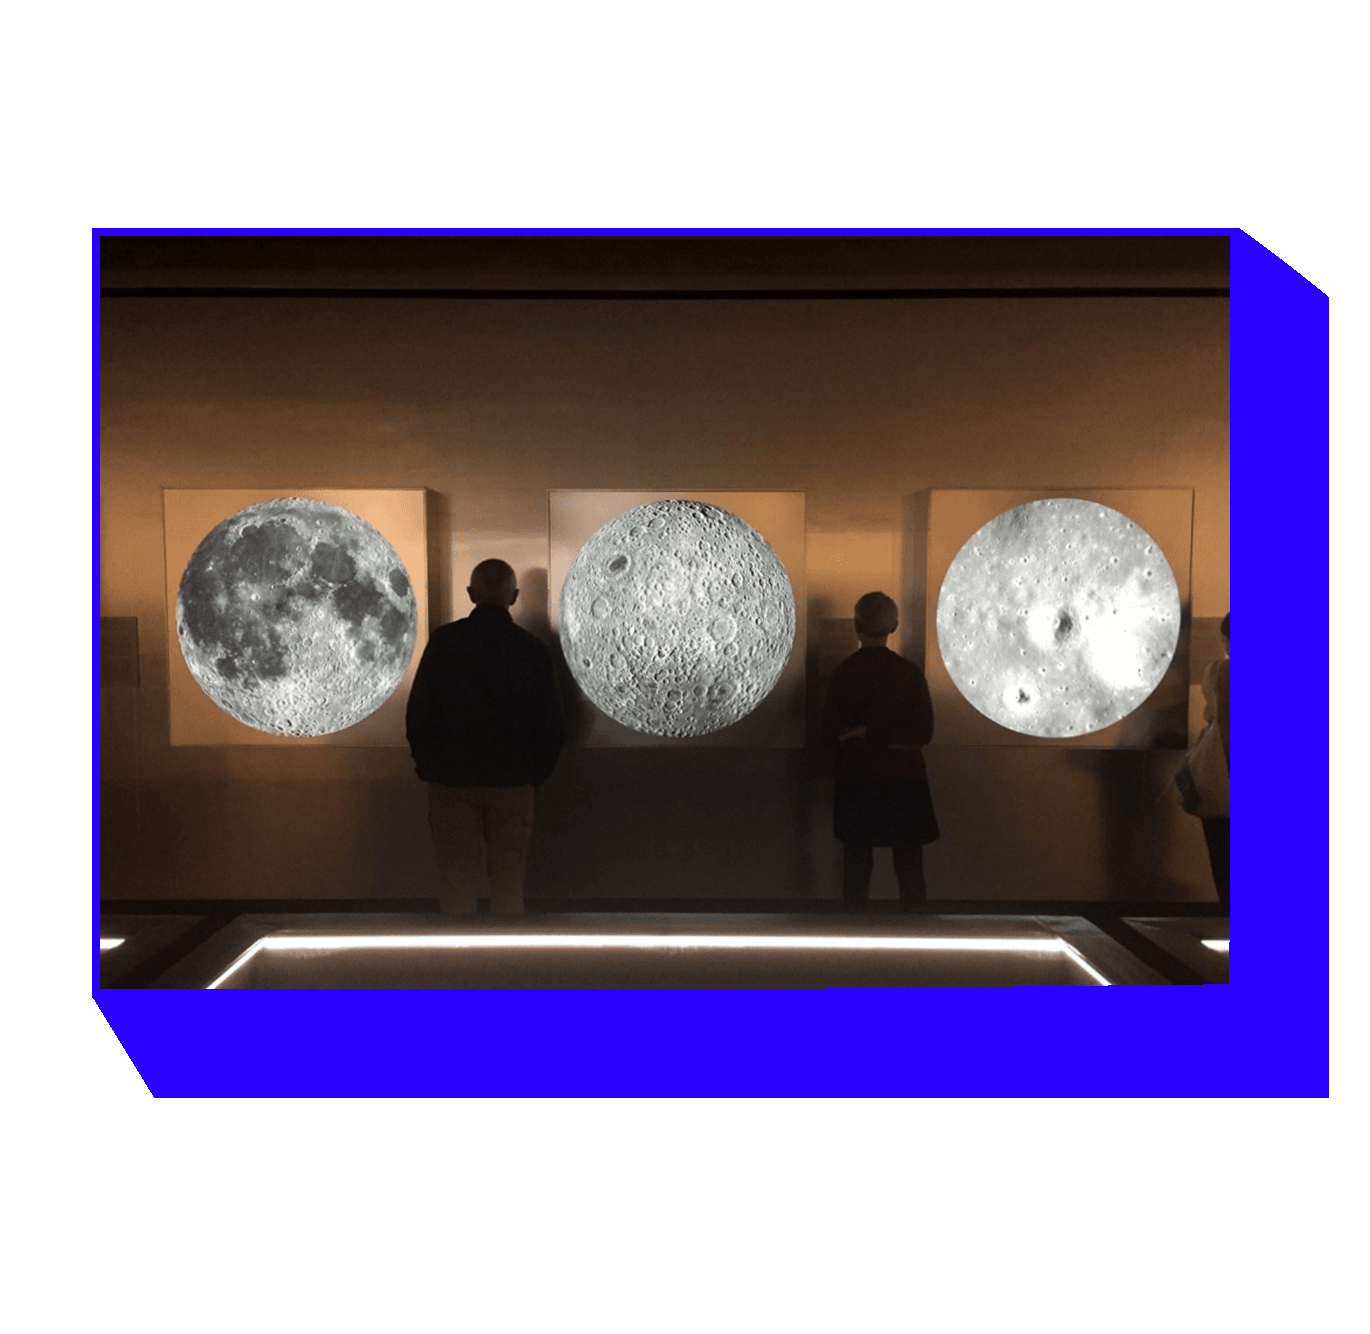 NASA photos from The Moon exhibition. Louisiana Museum of Modern Art, Humlebæk. 2018.